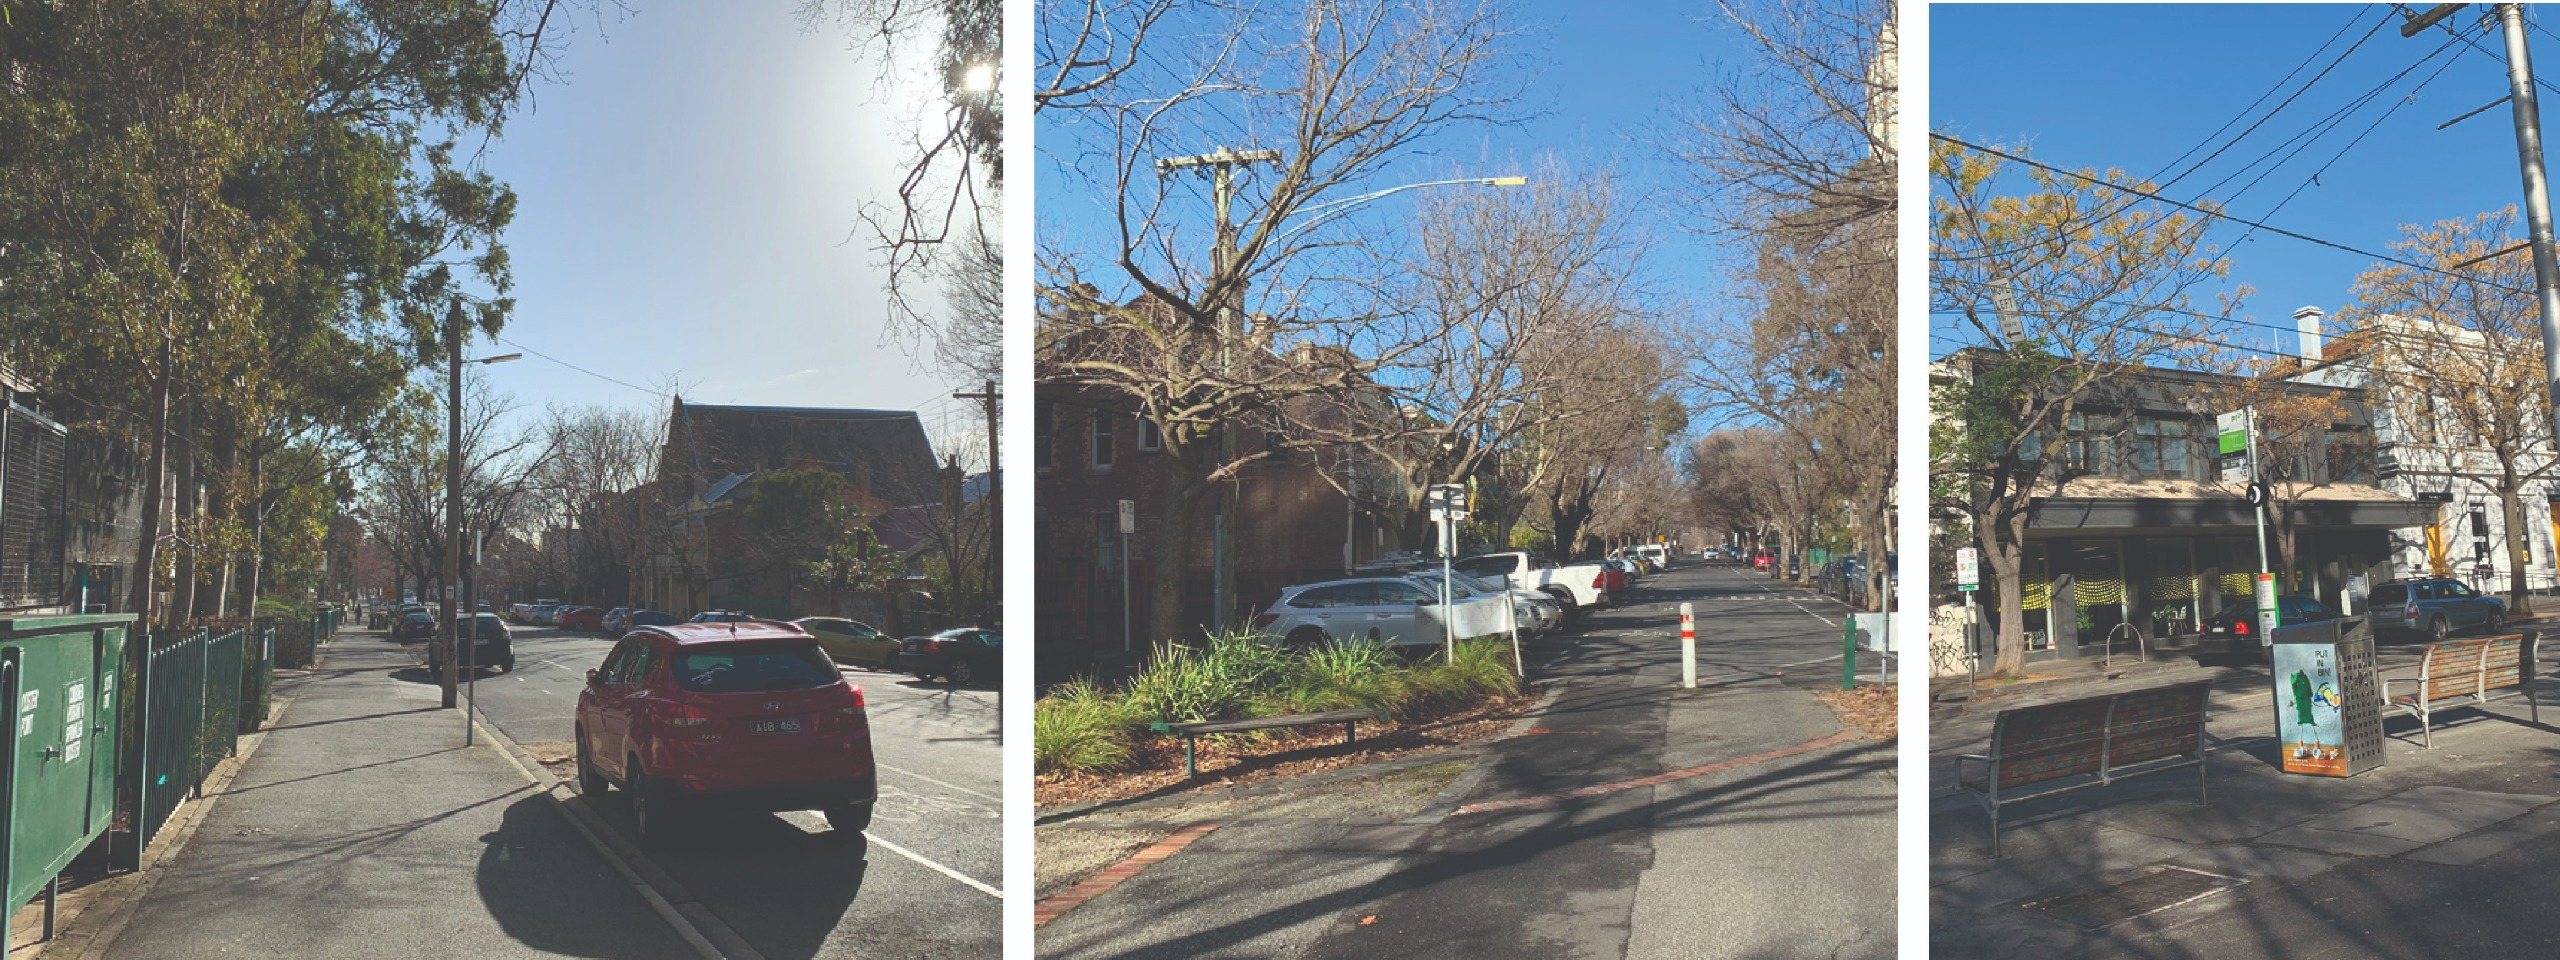 Three images: One showing a tree-lined  street with an asphalt footpath and a quiet road with ta car parked on the side, one showing the same street further along with a permanent road closure, and the final showing a tram stop at the same street.